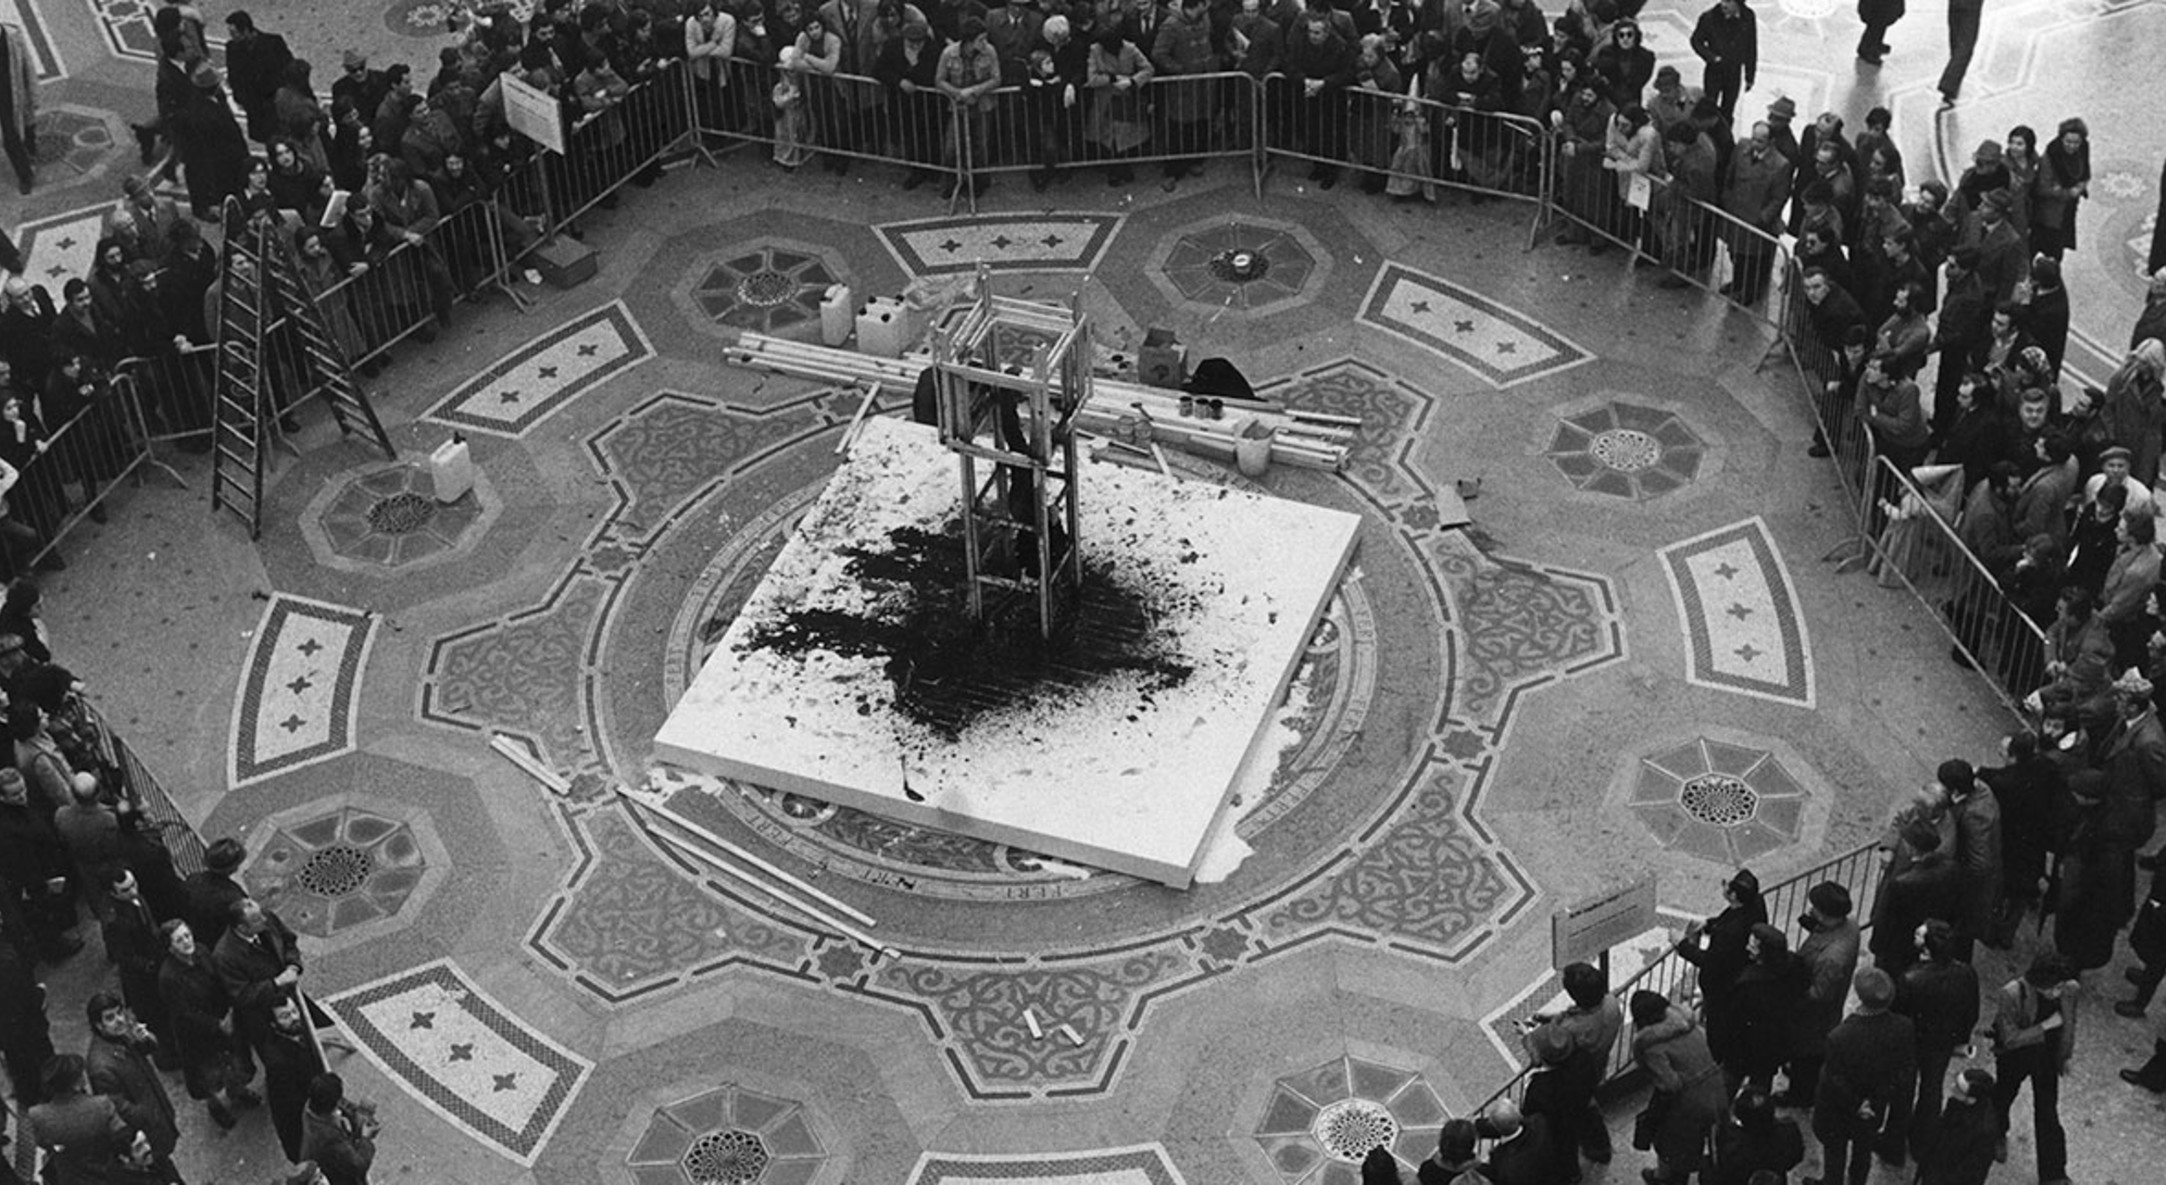 Performance still of Stuart Brisley, Homage to the Commune, 1976, Performance, Galleria Vittorio Emanuele II, Milan, Italy as part of Arte Inglese Oggi